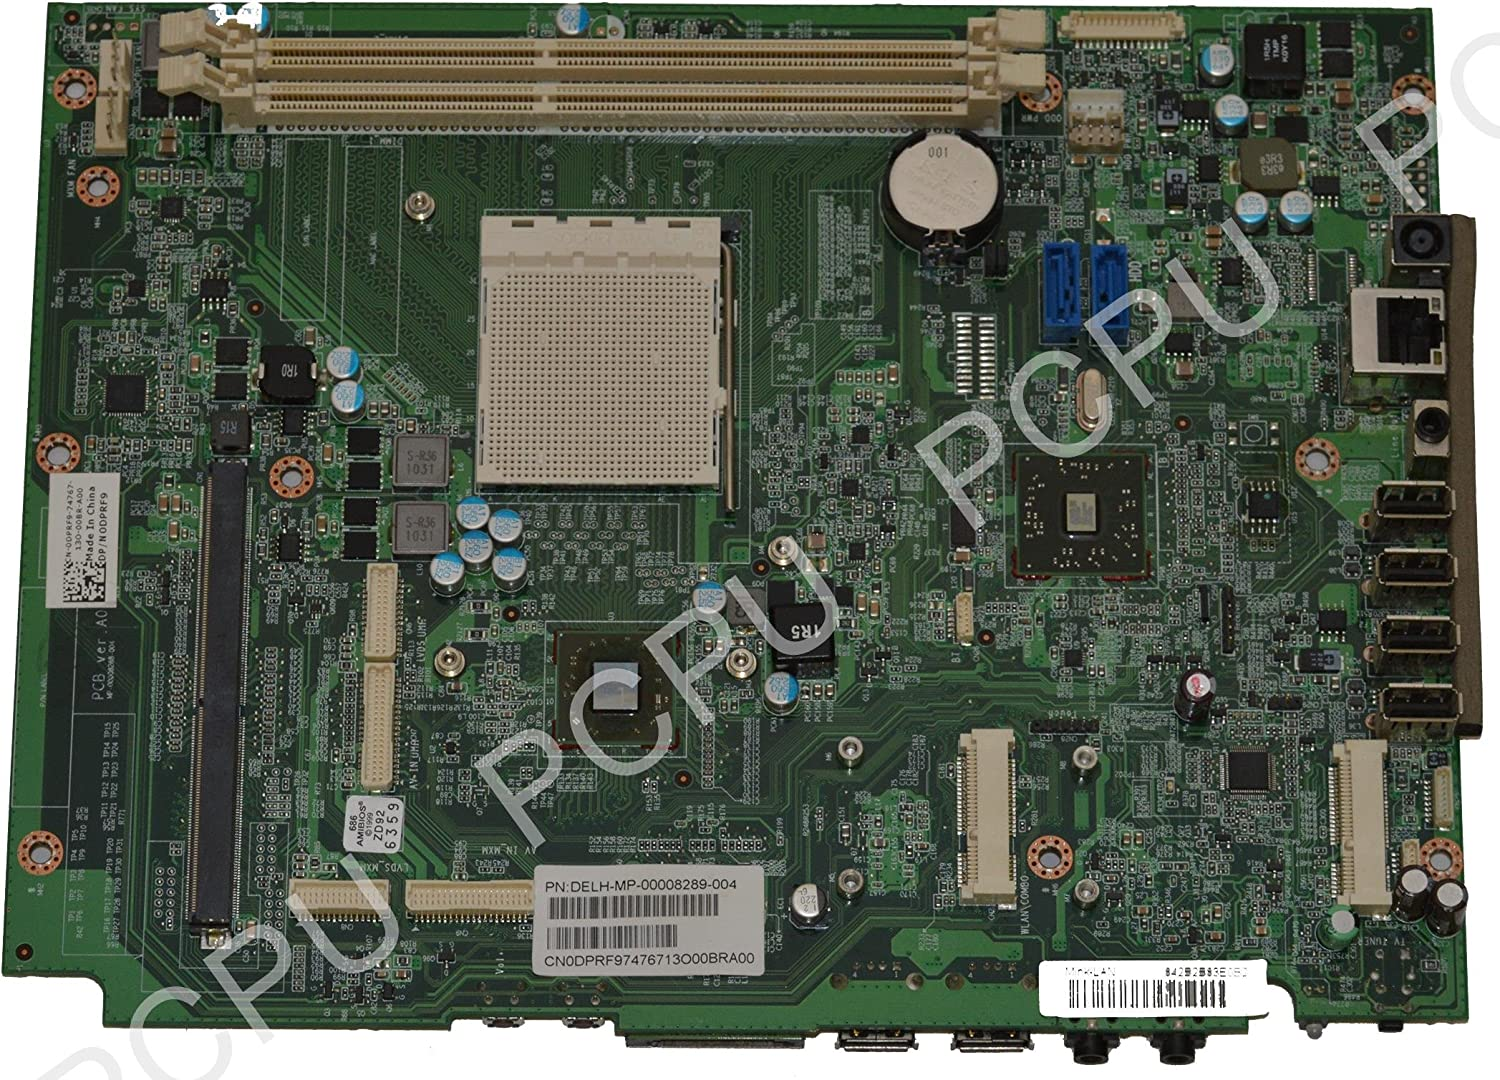 DPRF9 Dell Inspiron One D2305 AIO AMD Motherboard AM3